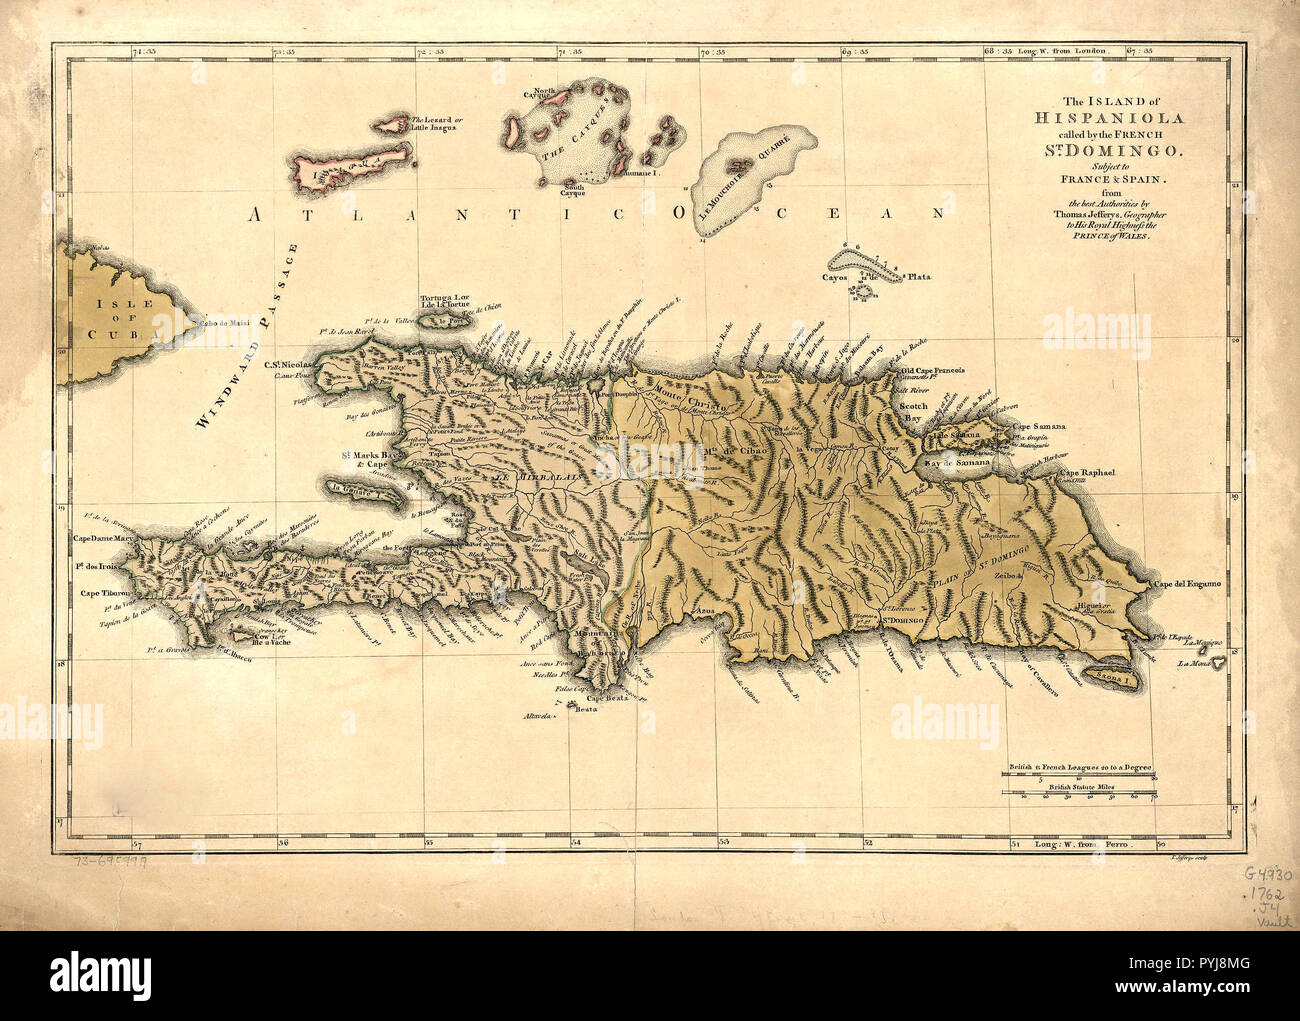 St Raphael France Map.Vintage Maps Antique Maps The Island Of Hispaniola Called By The